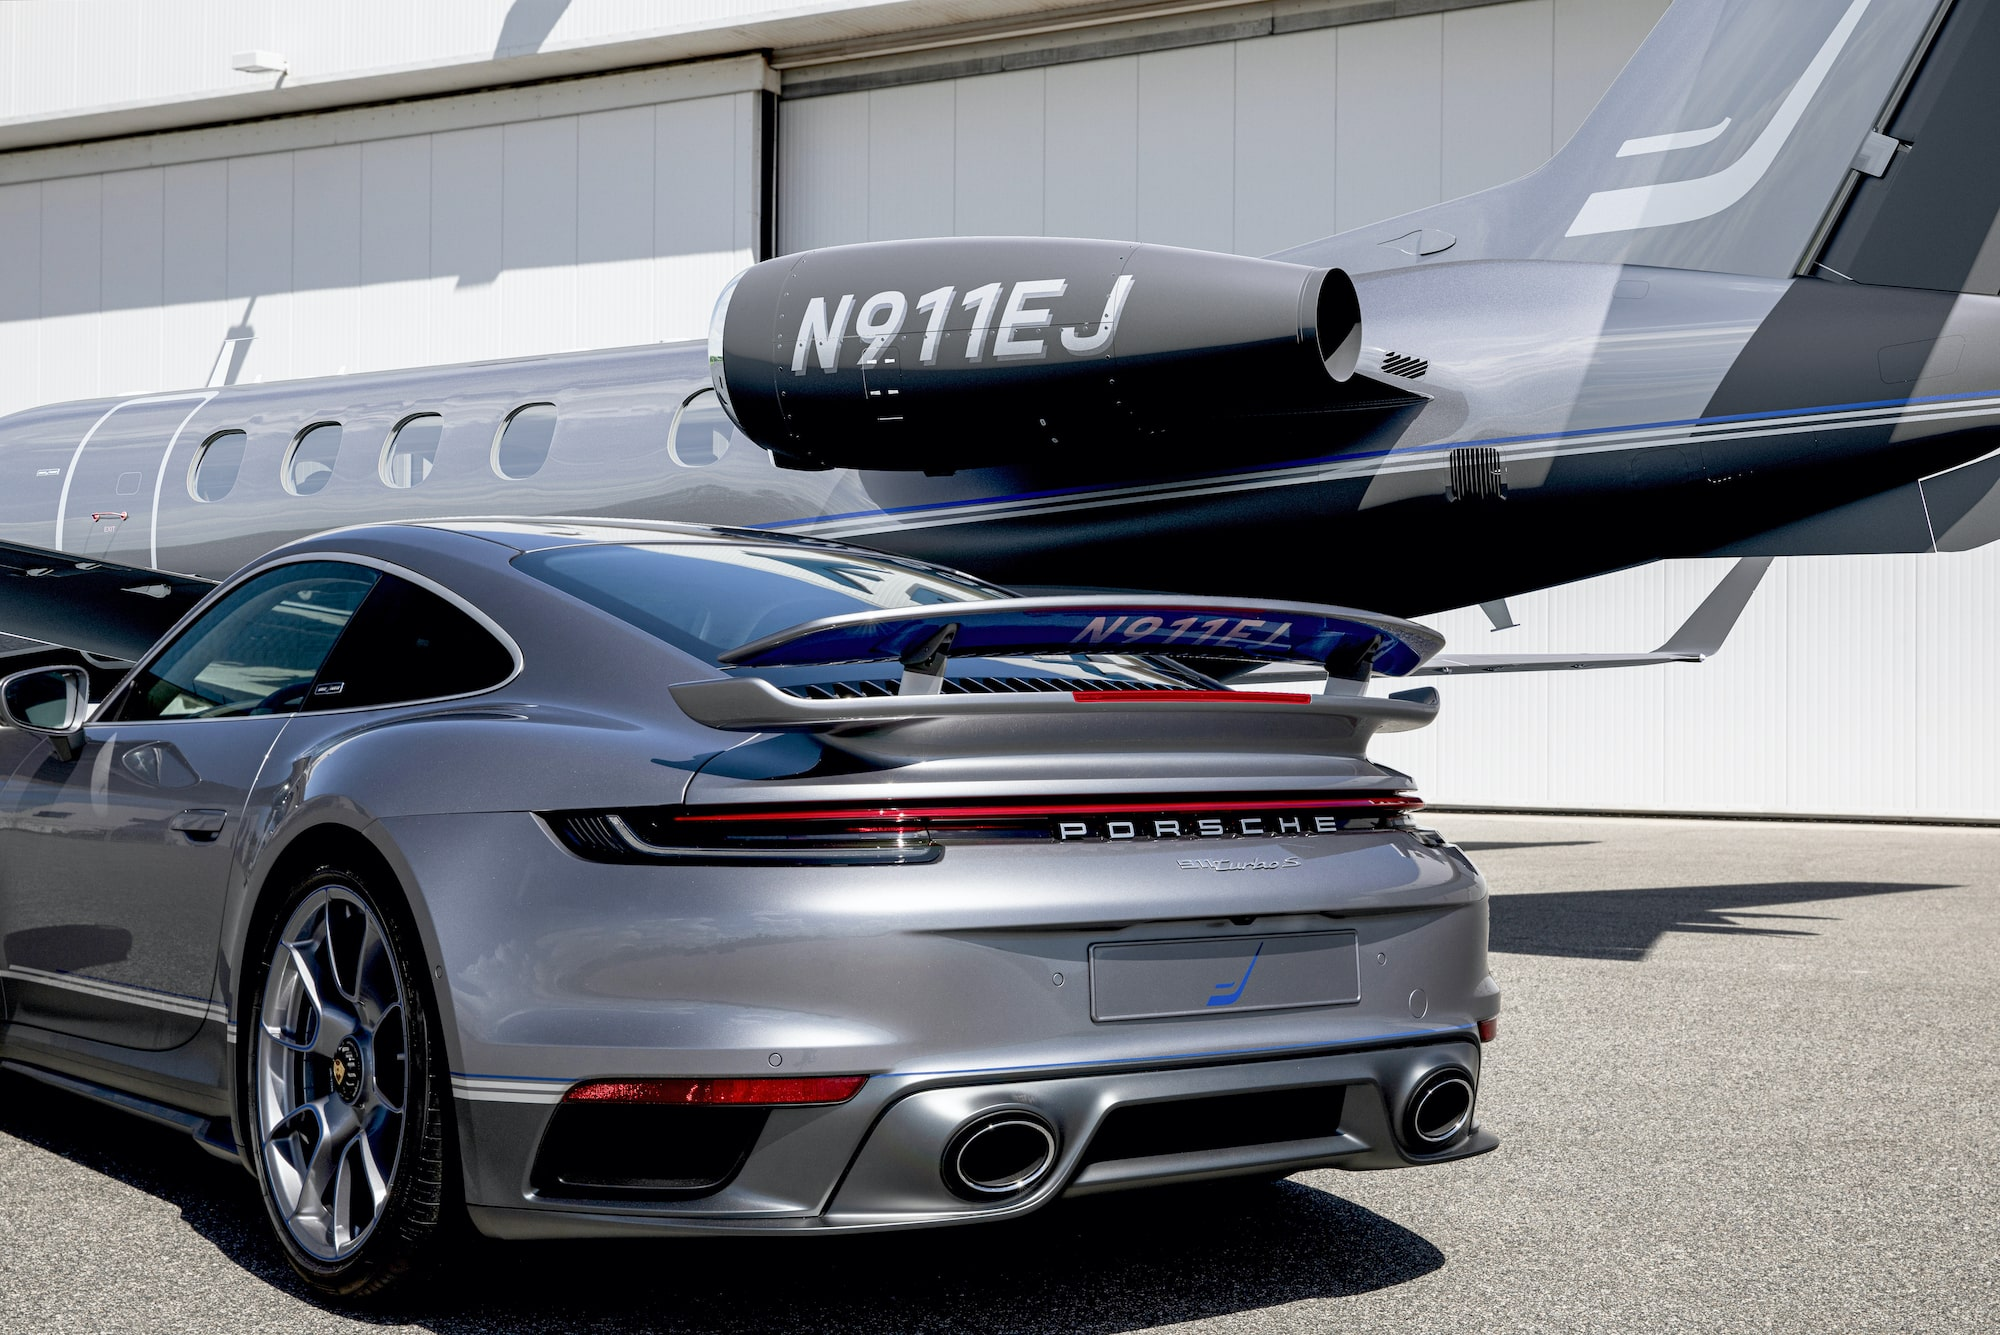 The Duet between Porsche and Embraer